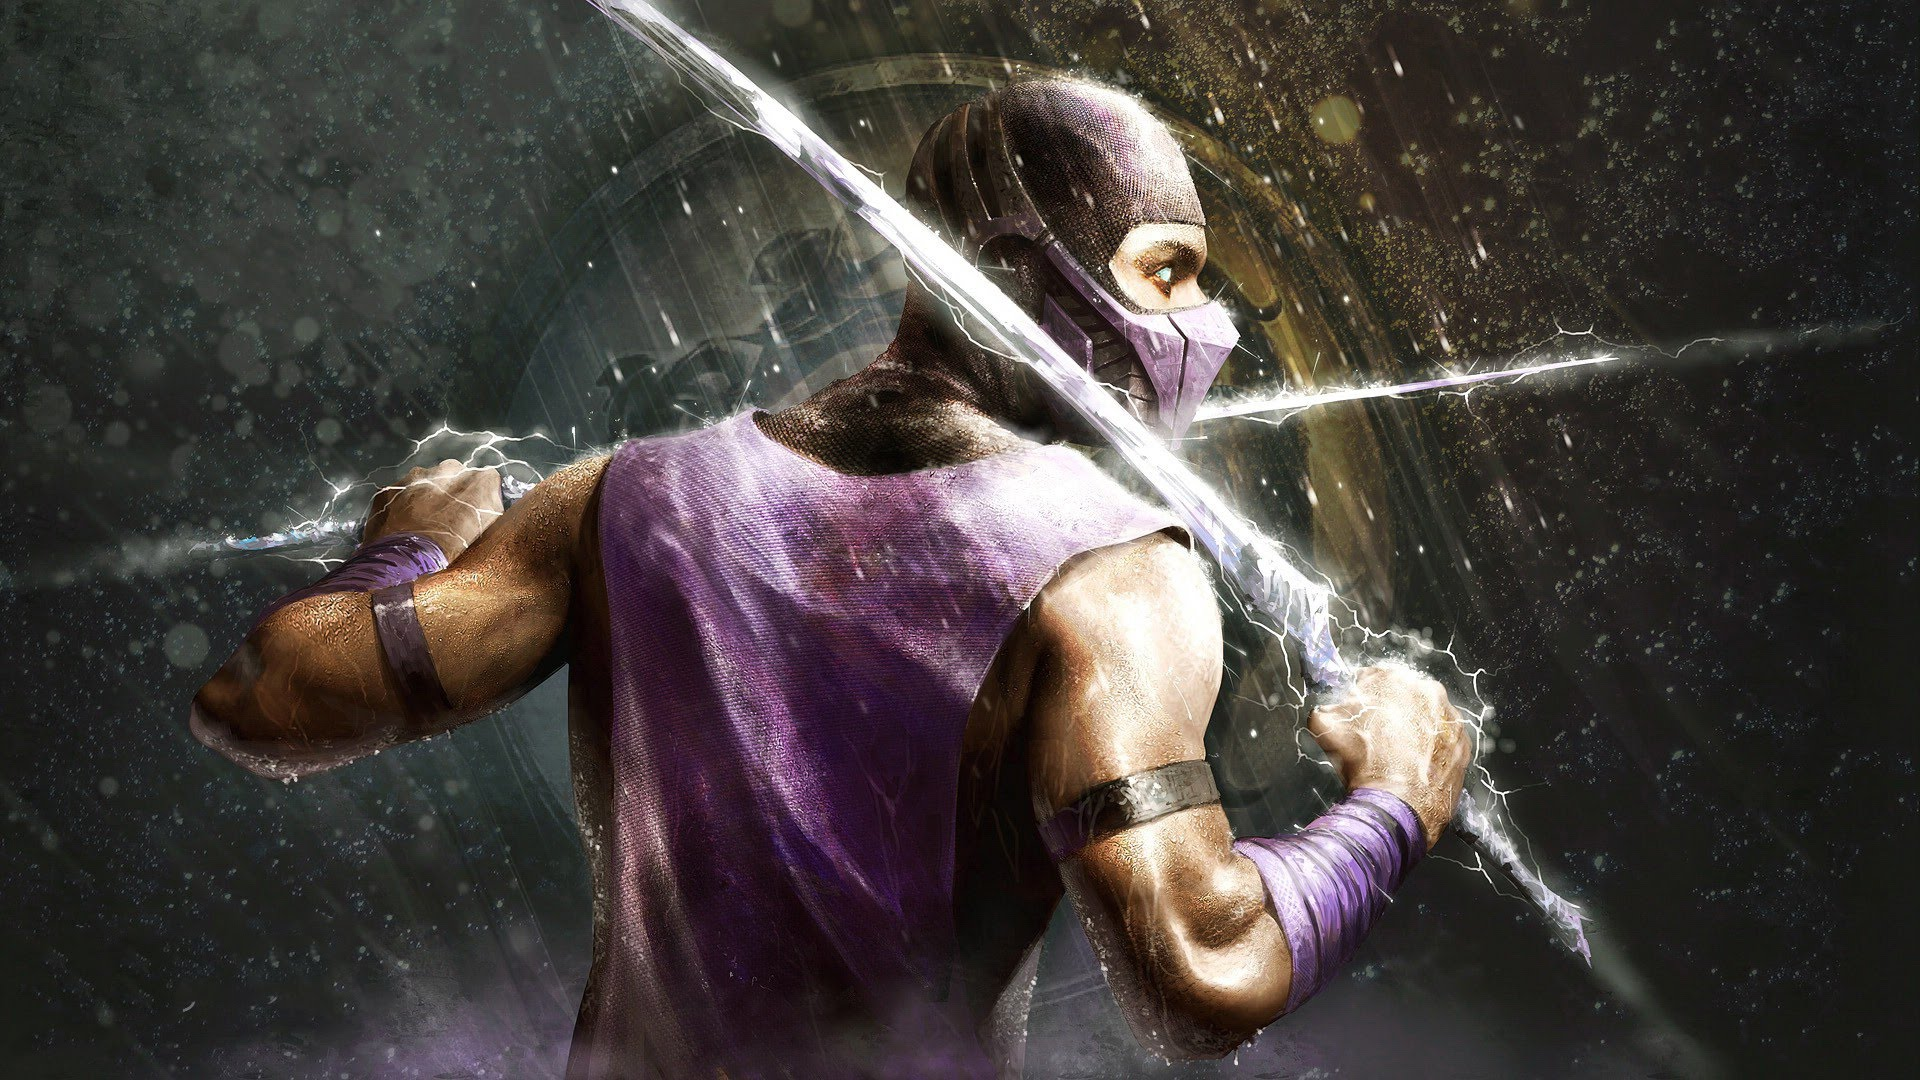 Mortal Kombat X Review: 5 Things I Love and Hate About Mortal Kombat